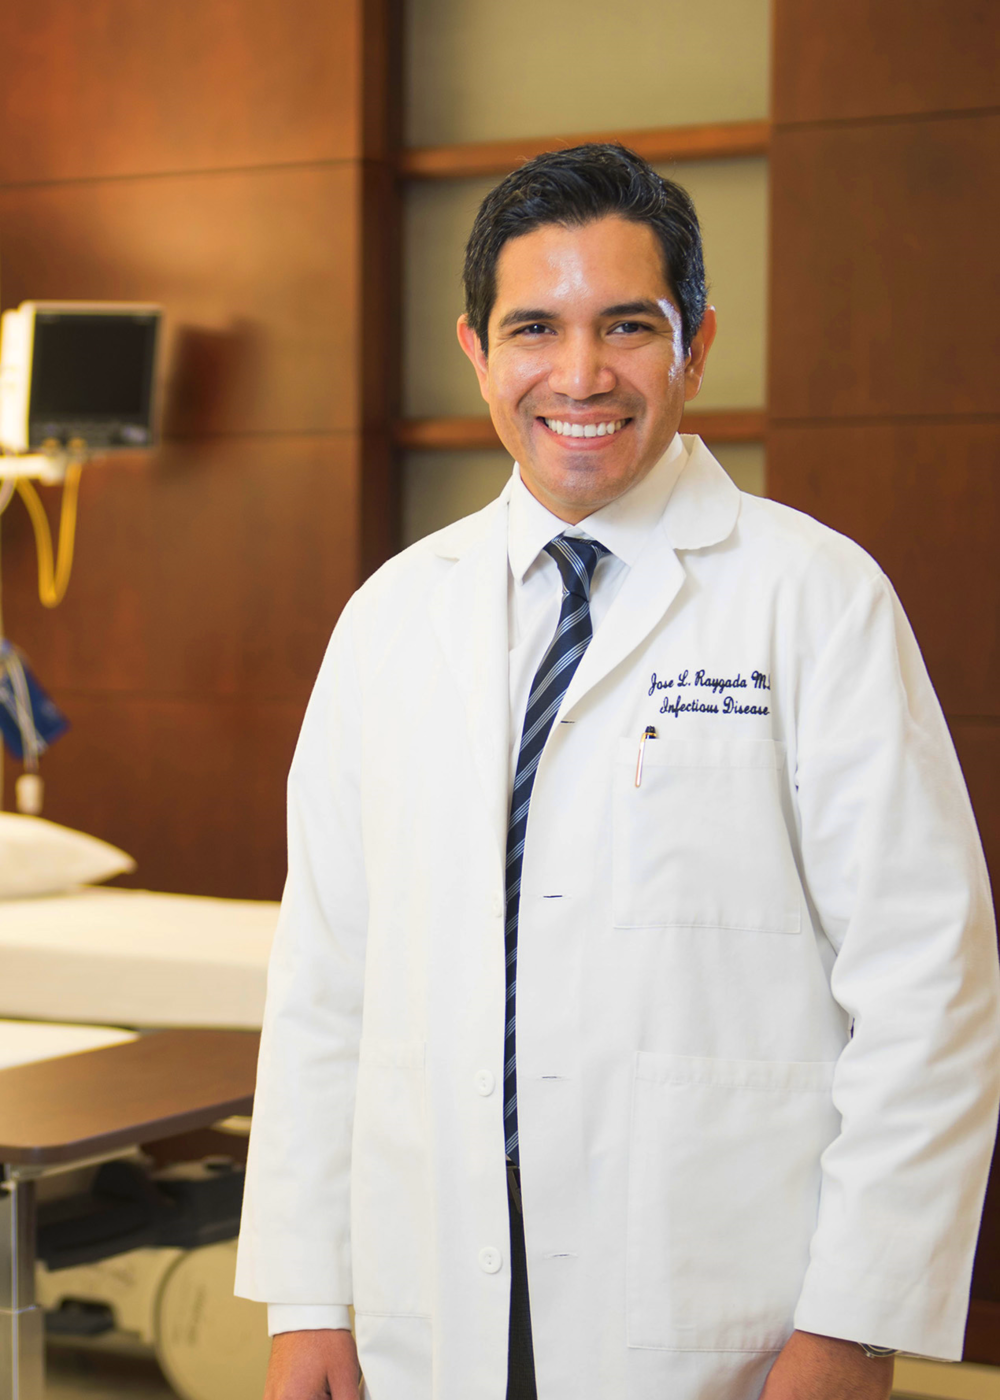 Medical Director, Vascular Medicine and Infectious Disease Jose L. Raygada, MD